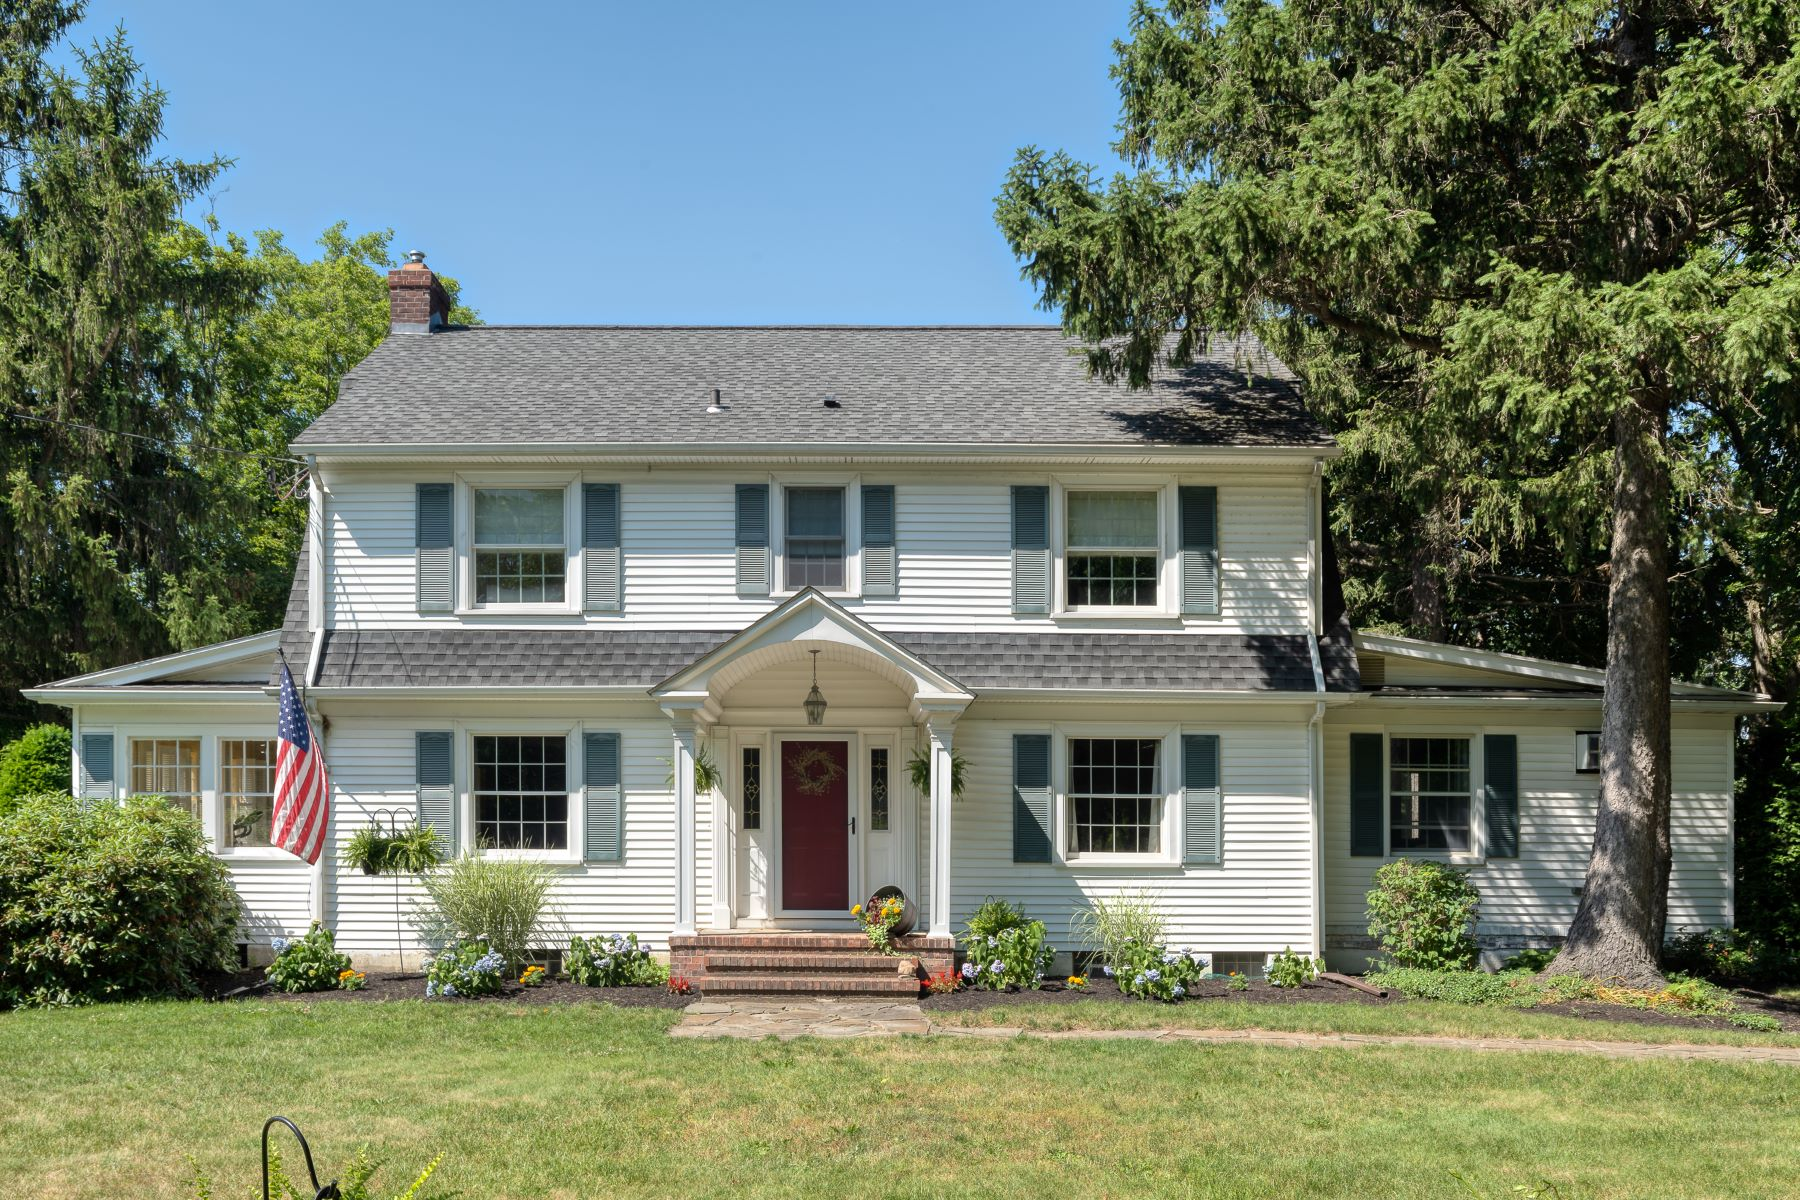 Single Family Homes for Active at Historic Orchard Park Colonial 5560 Big Tree Road Orchard Park, New York 14127 United States